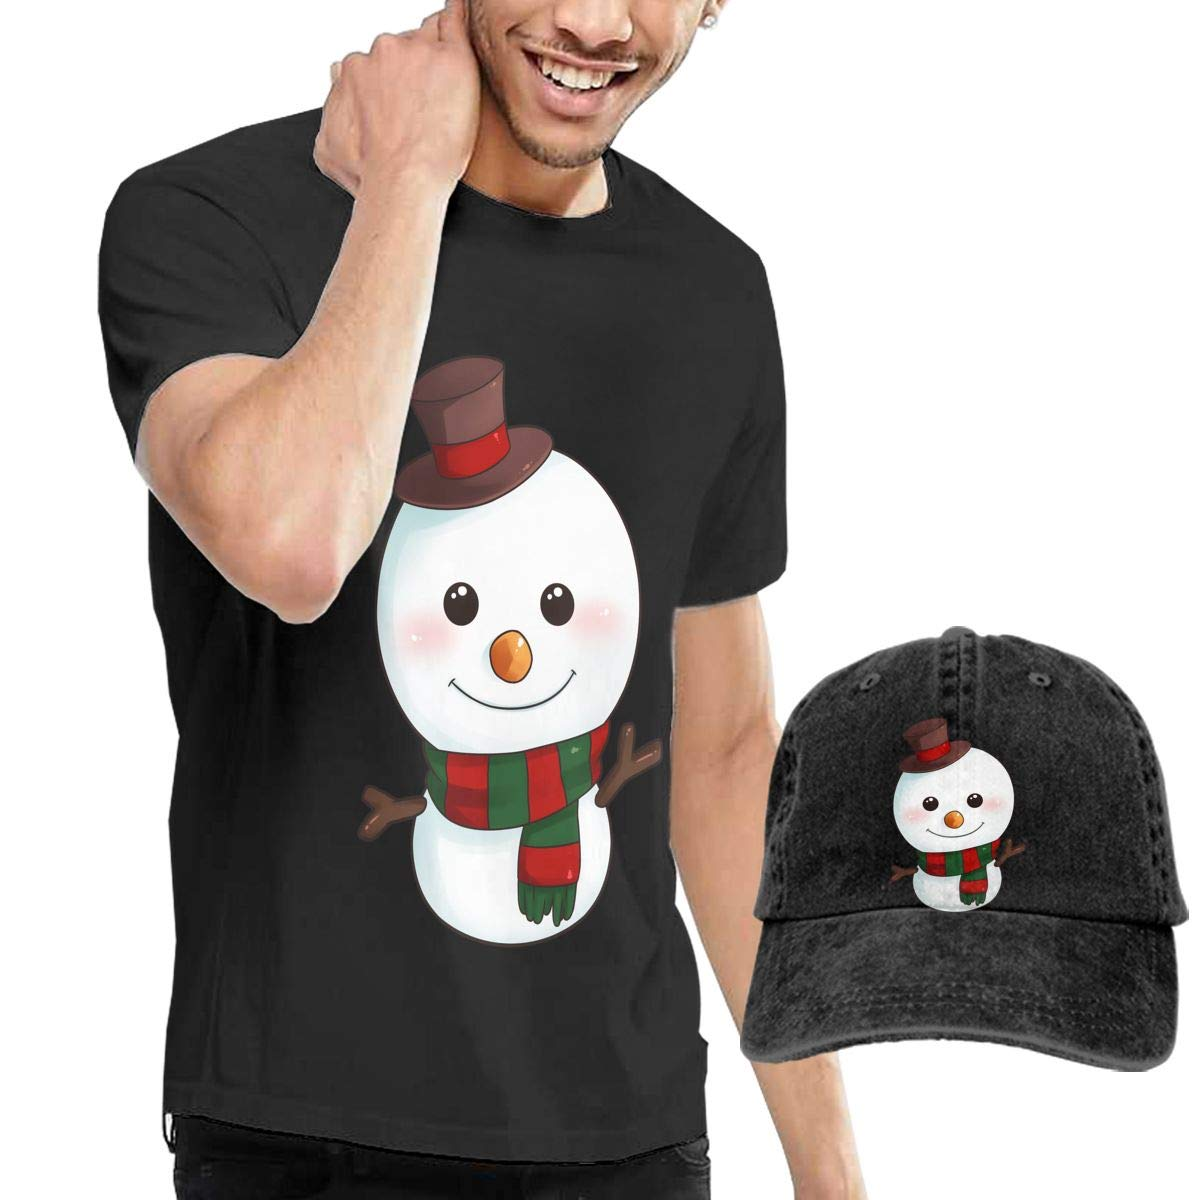 QqZXD Cartoon Snowman Smile Fashion Mens T-Shirt Hats Youth /& Adult T-Shirts